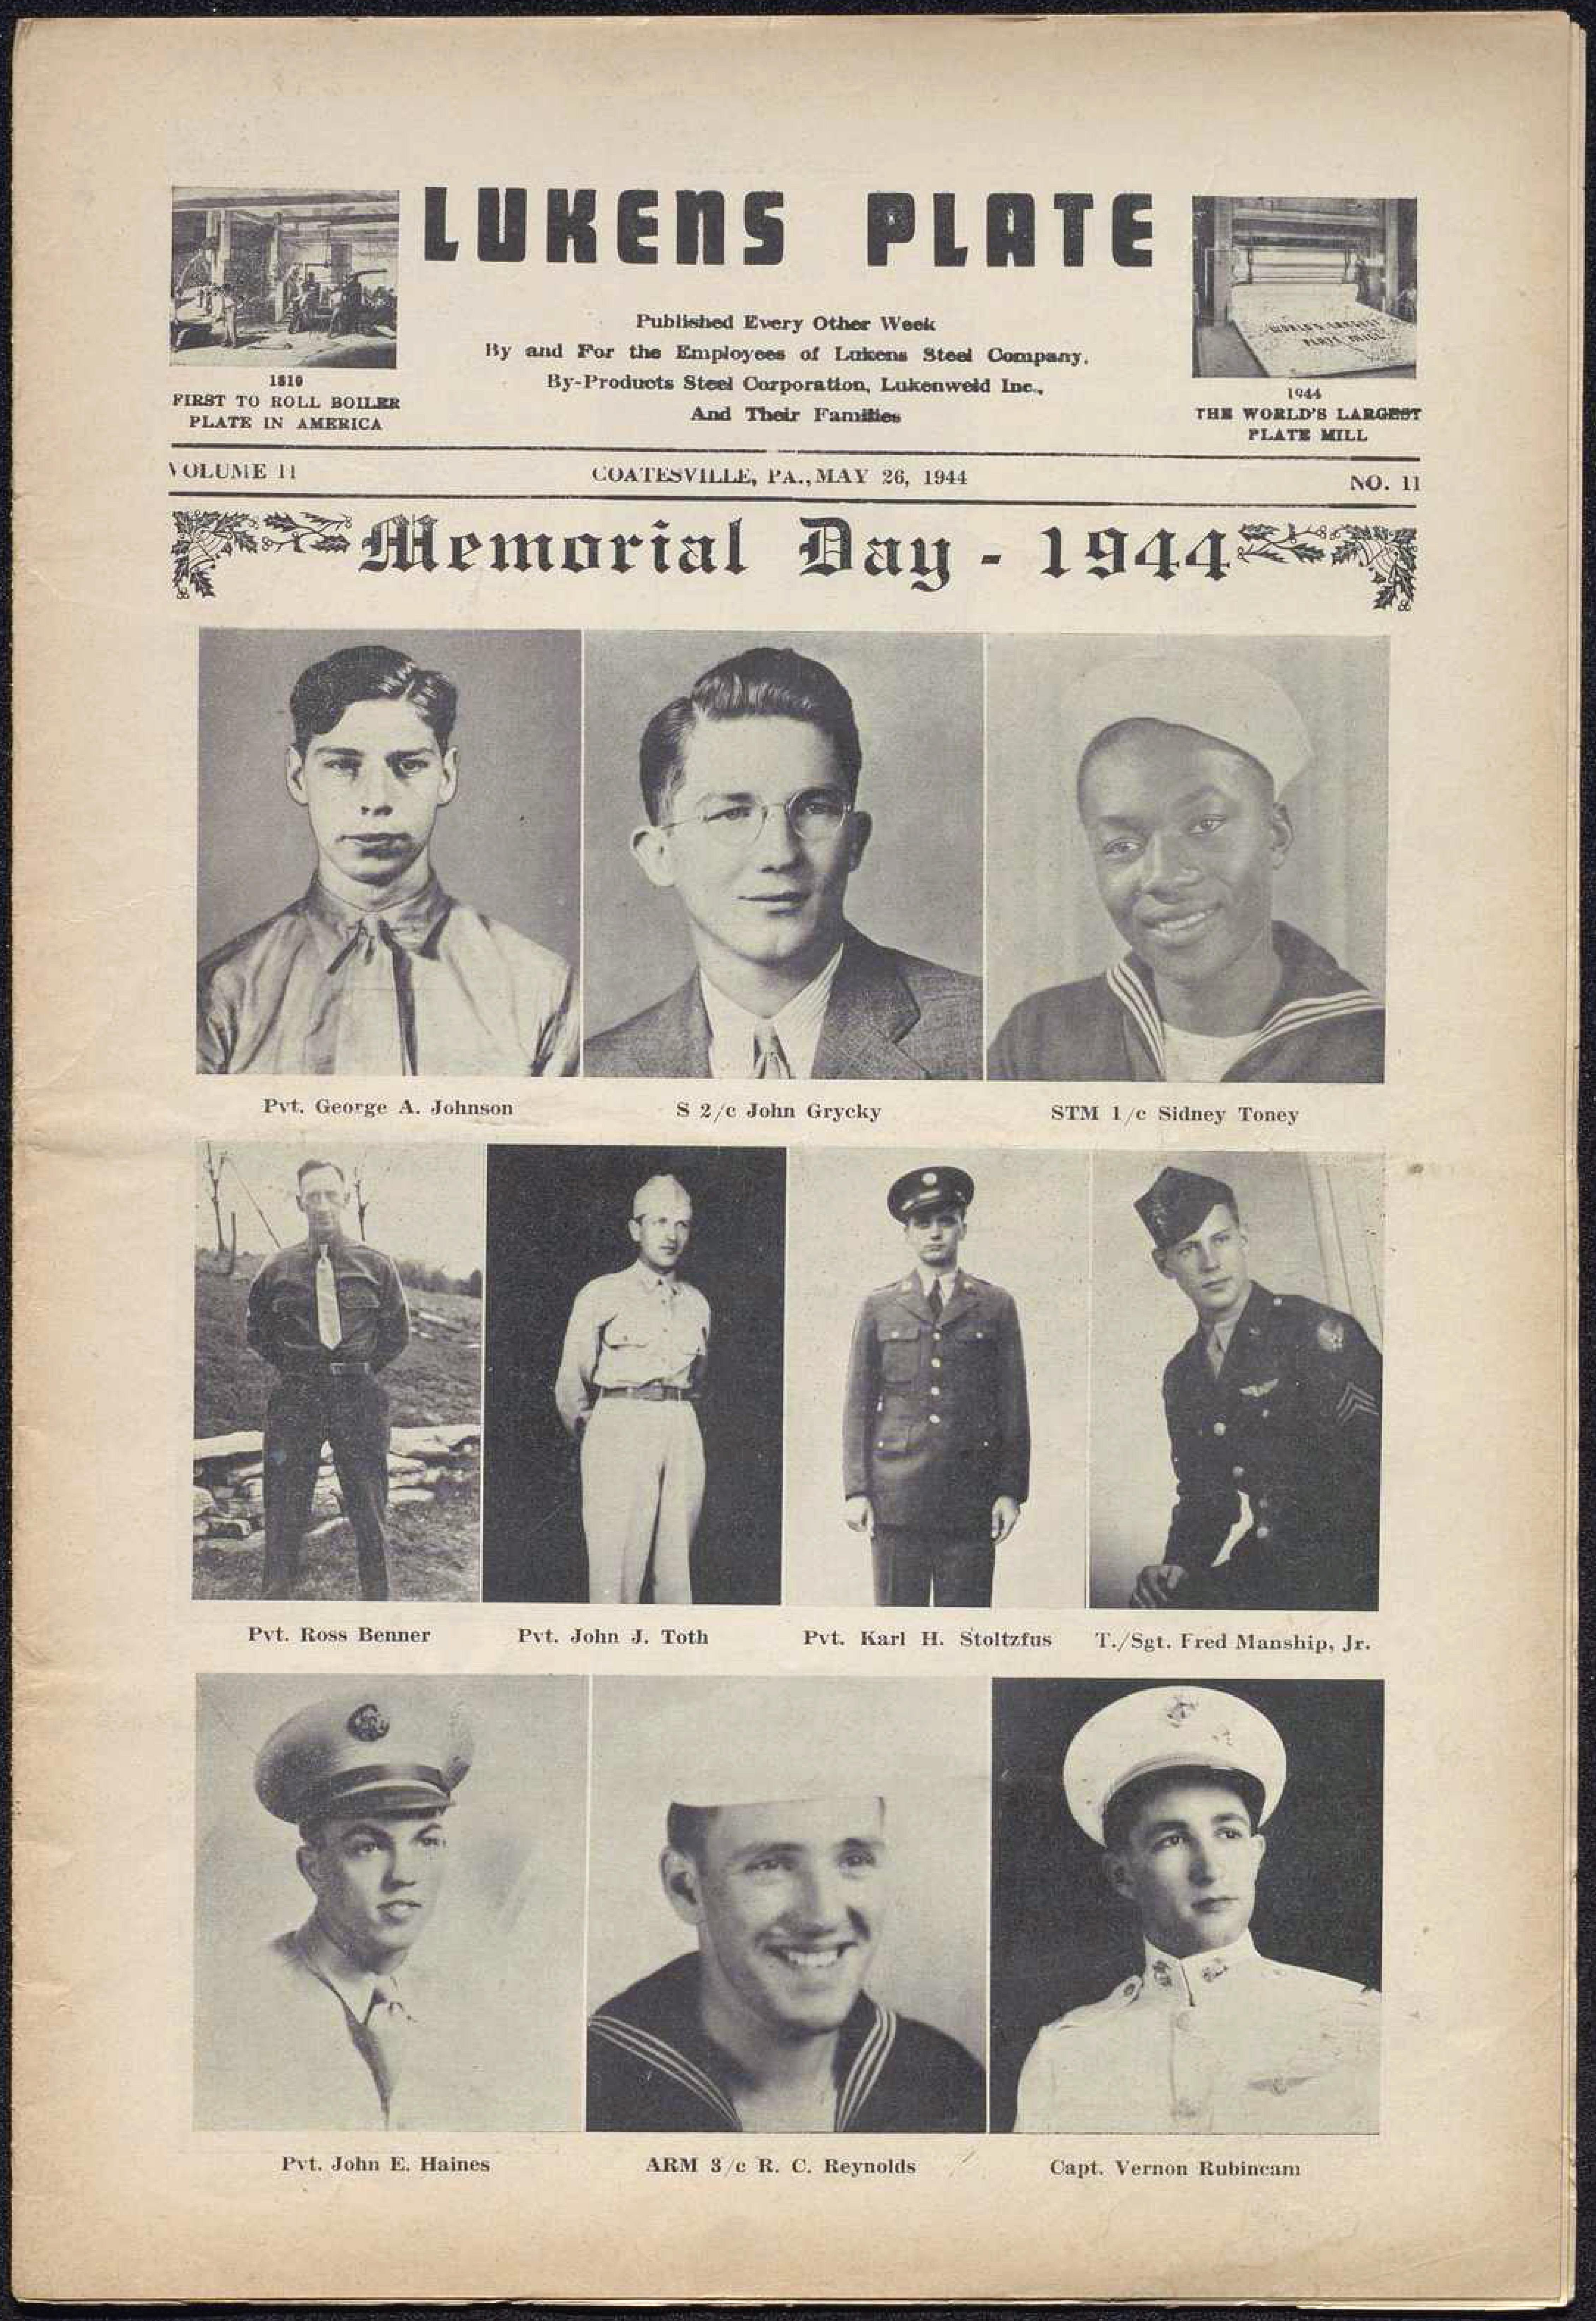 Cover of 'Lukens Plate' newsletter. Memorial Day issue with black and white photographs of employees in the military.